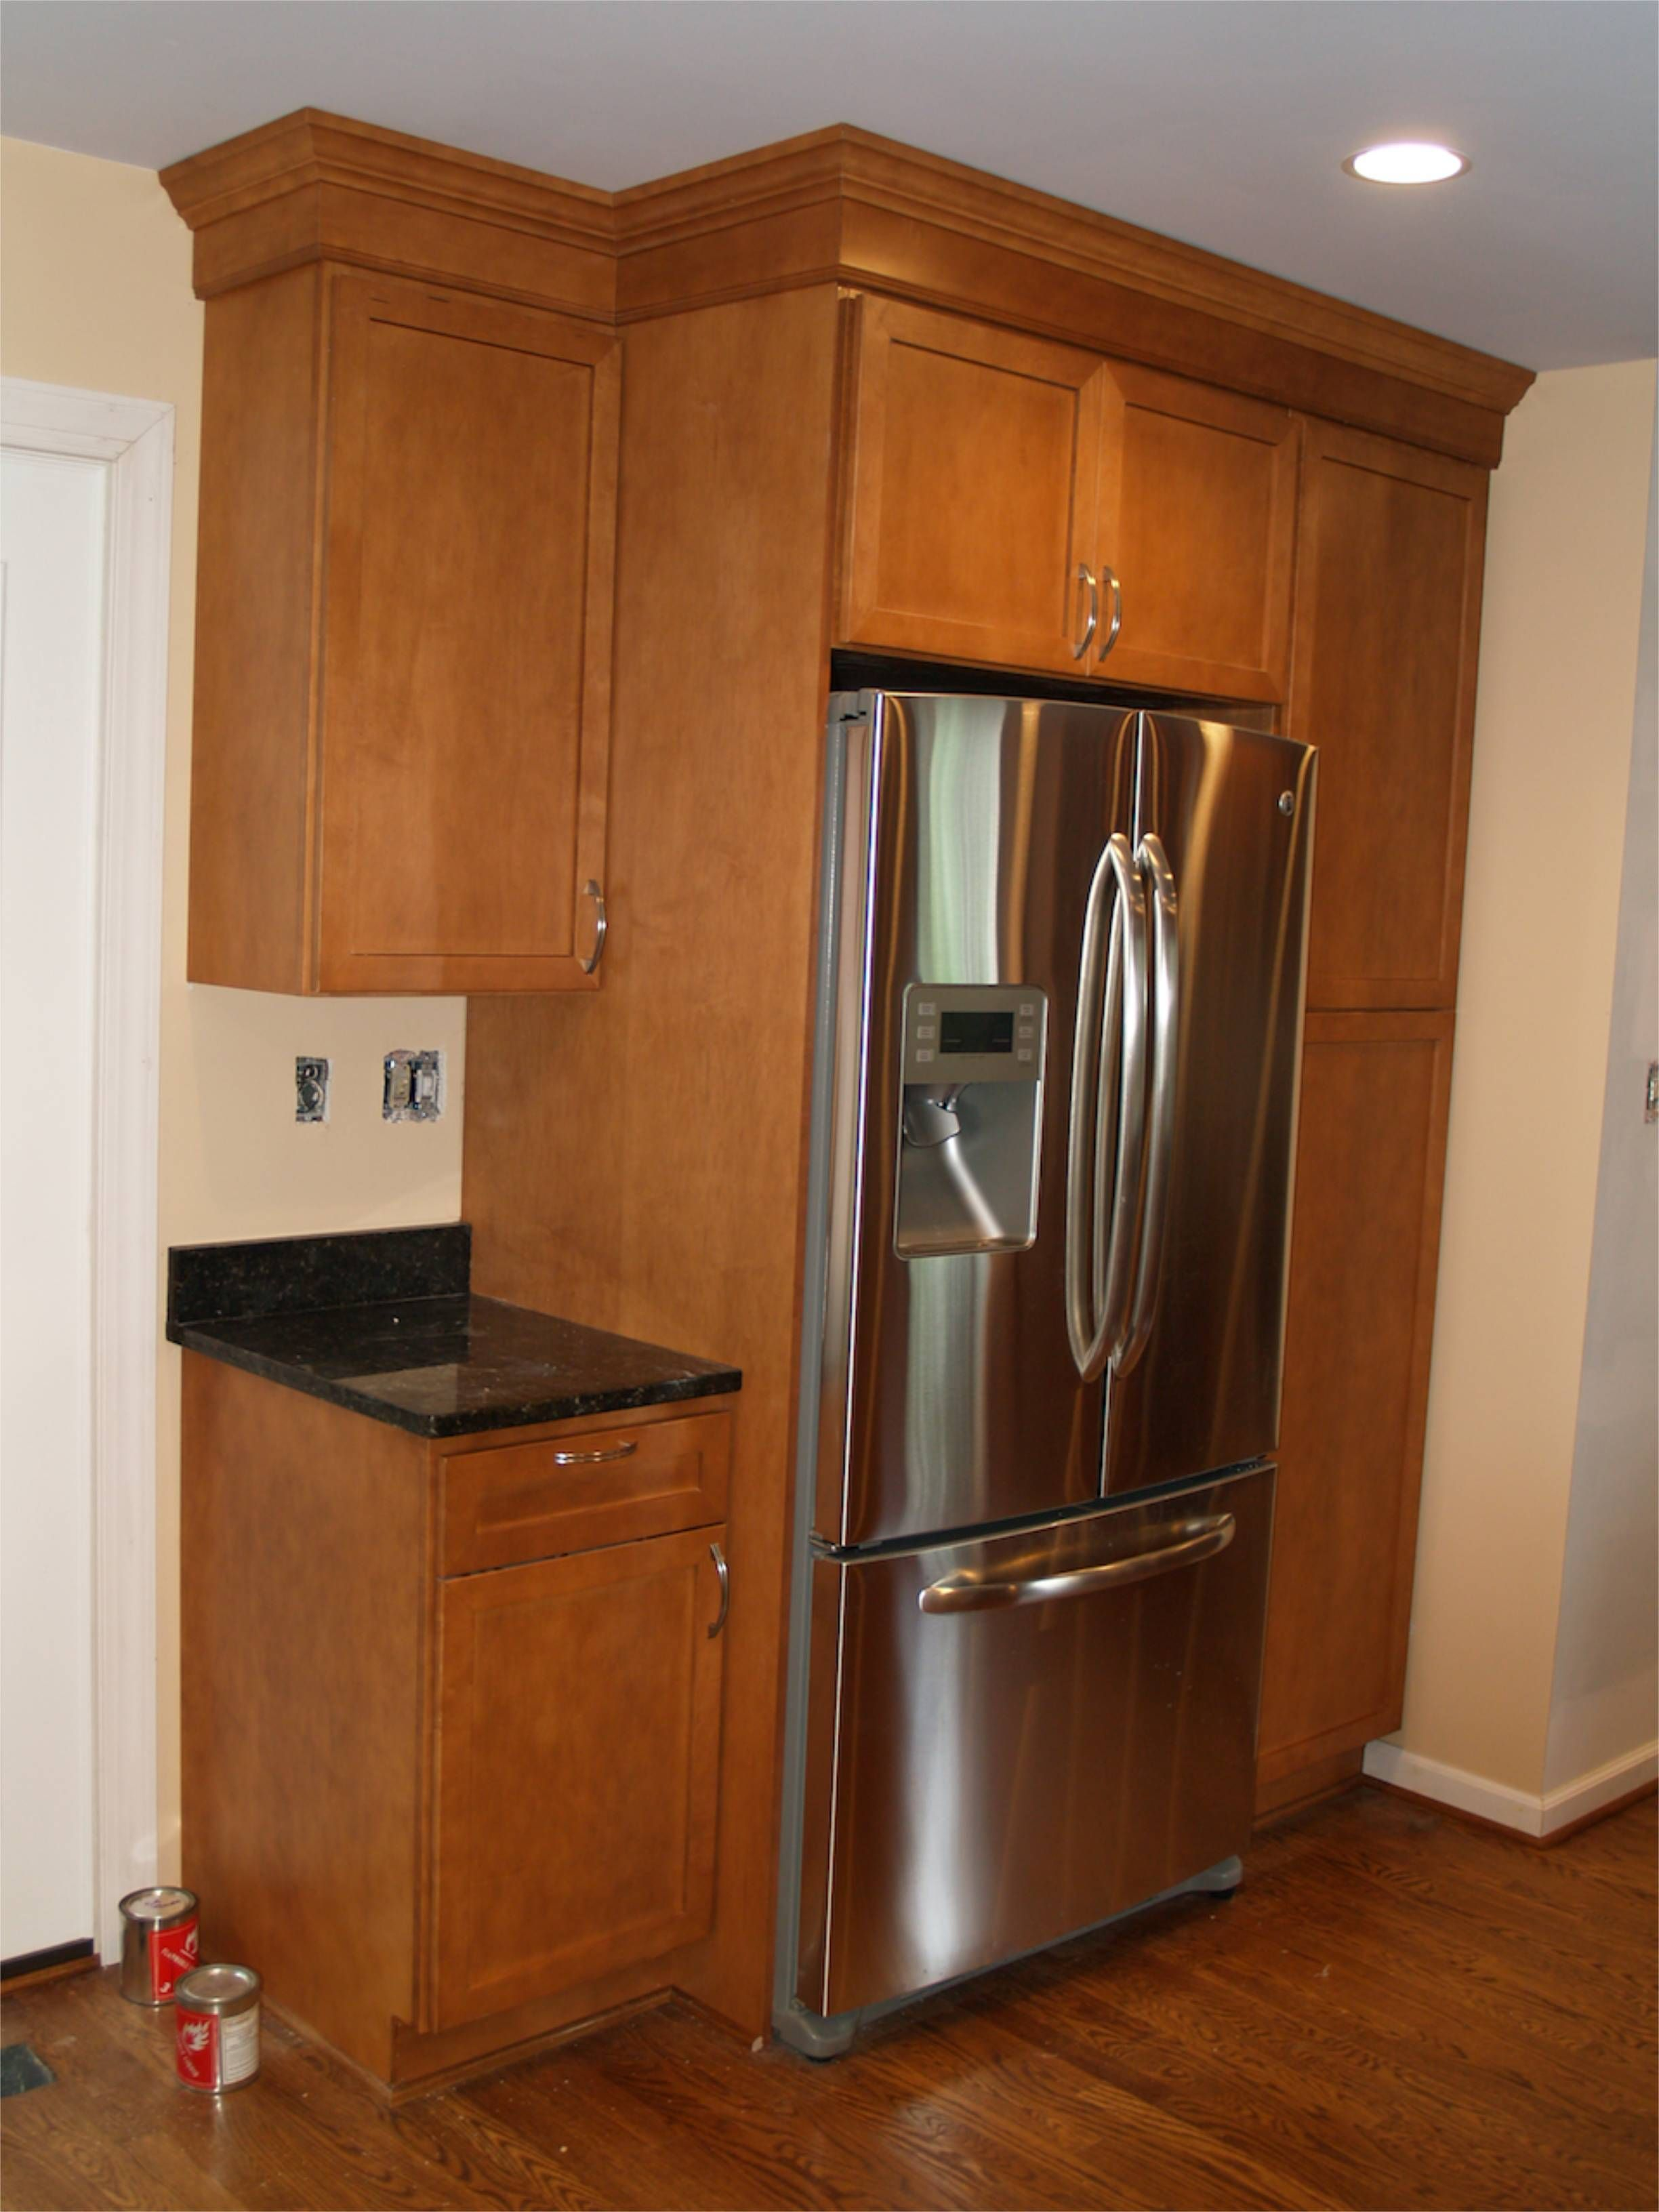 Refrigerator Area Cabinets Geeky Girl Engineer In 2020 New Kitchen Cabinets Kitchen Cabinet Design Refrigerator Cabinet